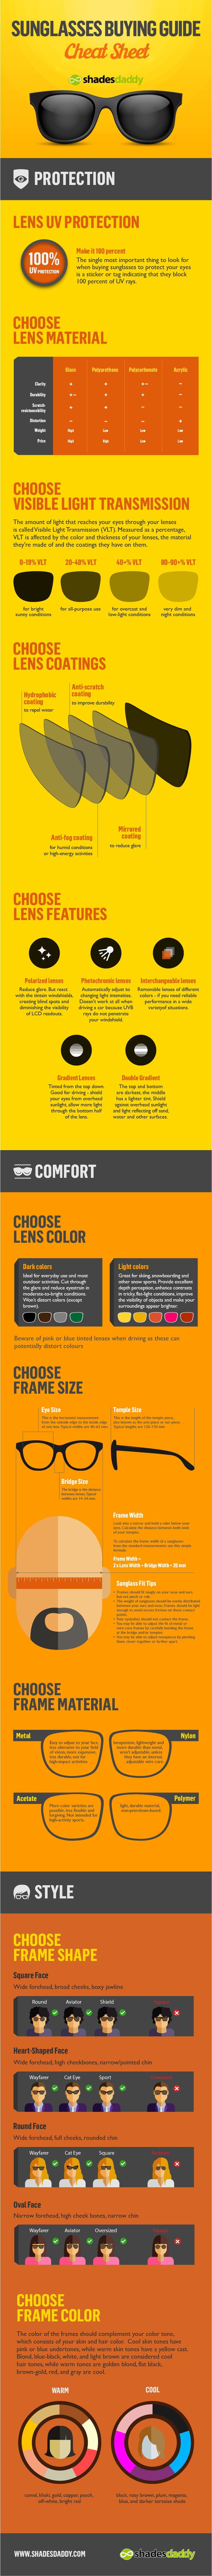 Sunglasses Buying Guide - Cheat Sheet - How To Buy Sunglasses Online